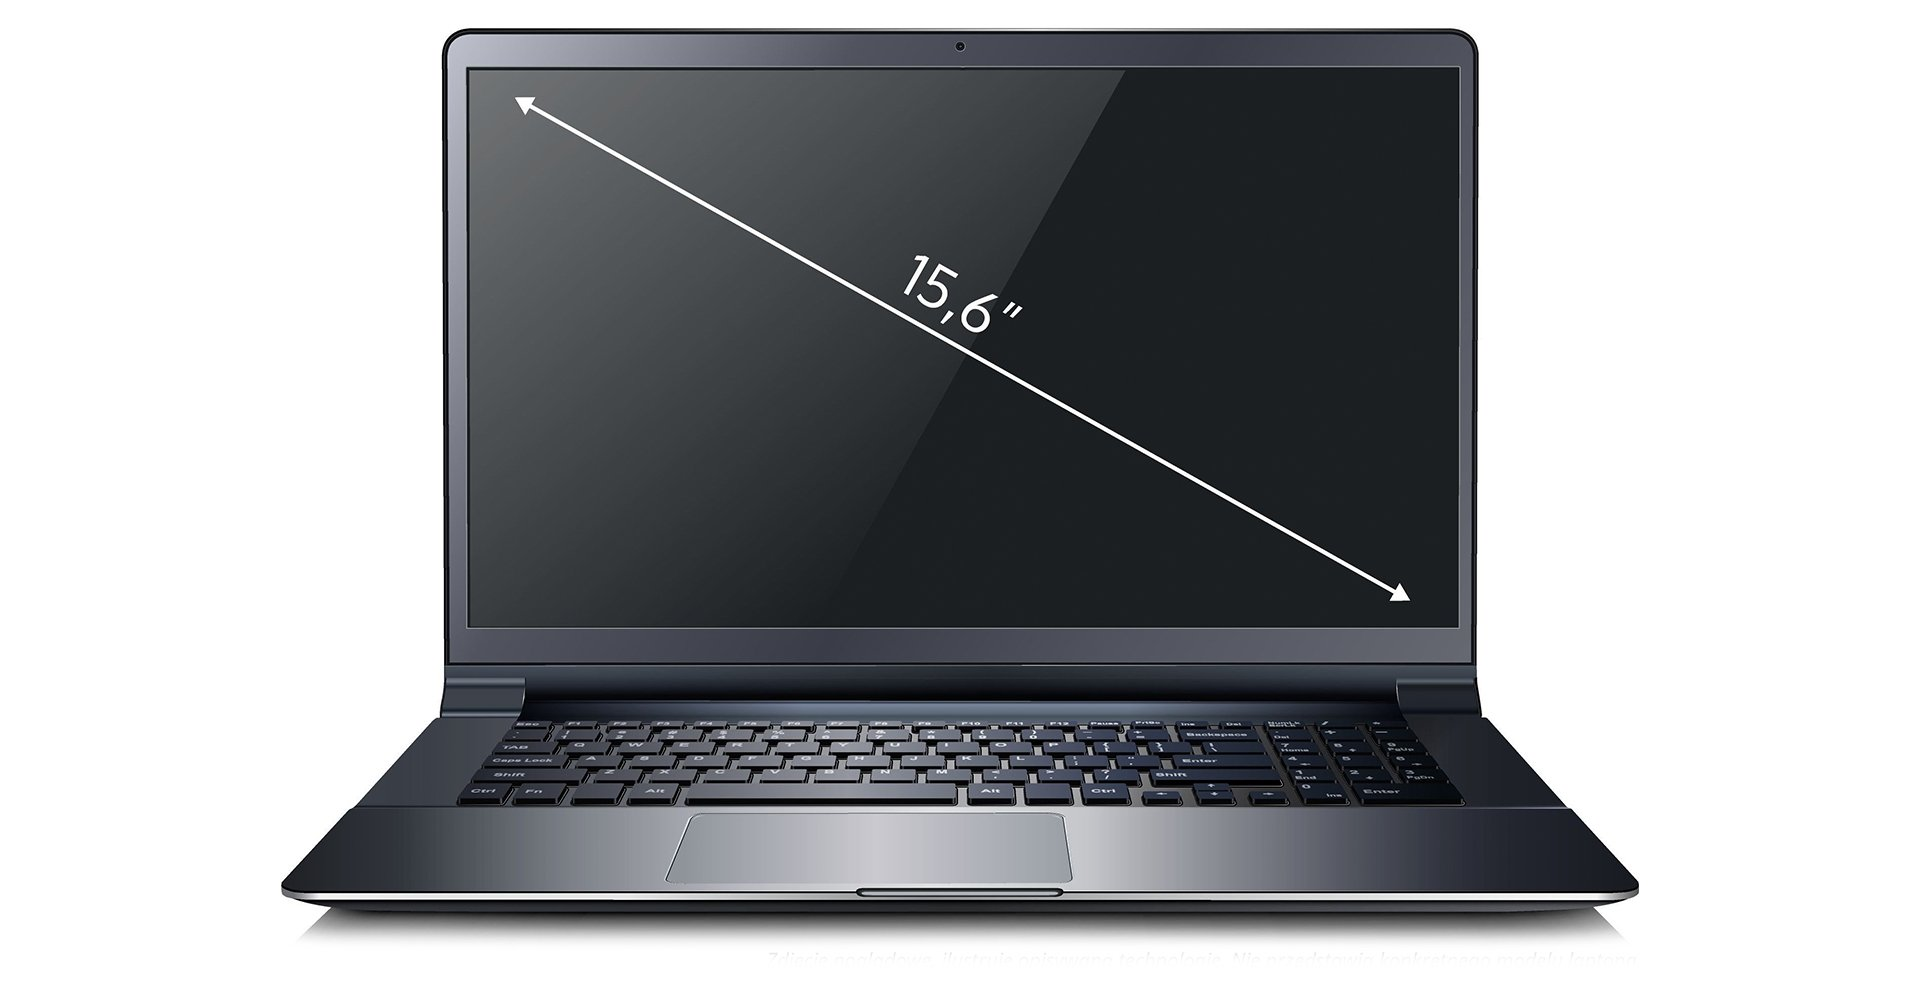 Fujitsu LifeBook A357 (S26391K425V300) 12 GB RAM/ 1 TB SSD/ 500GB HDD/ Windows 10 Pro                             15.6 collas pa diagonāli